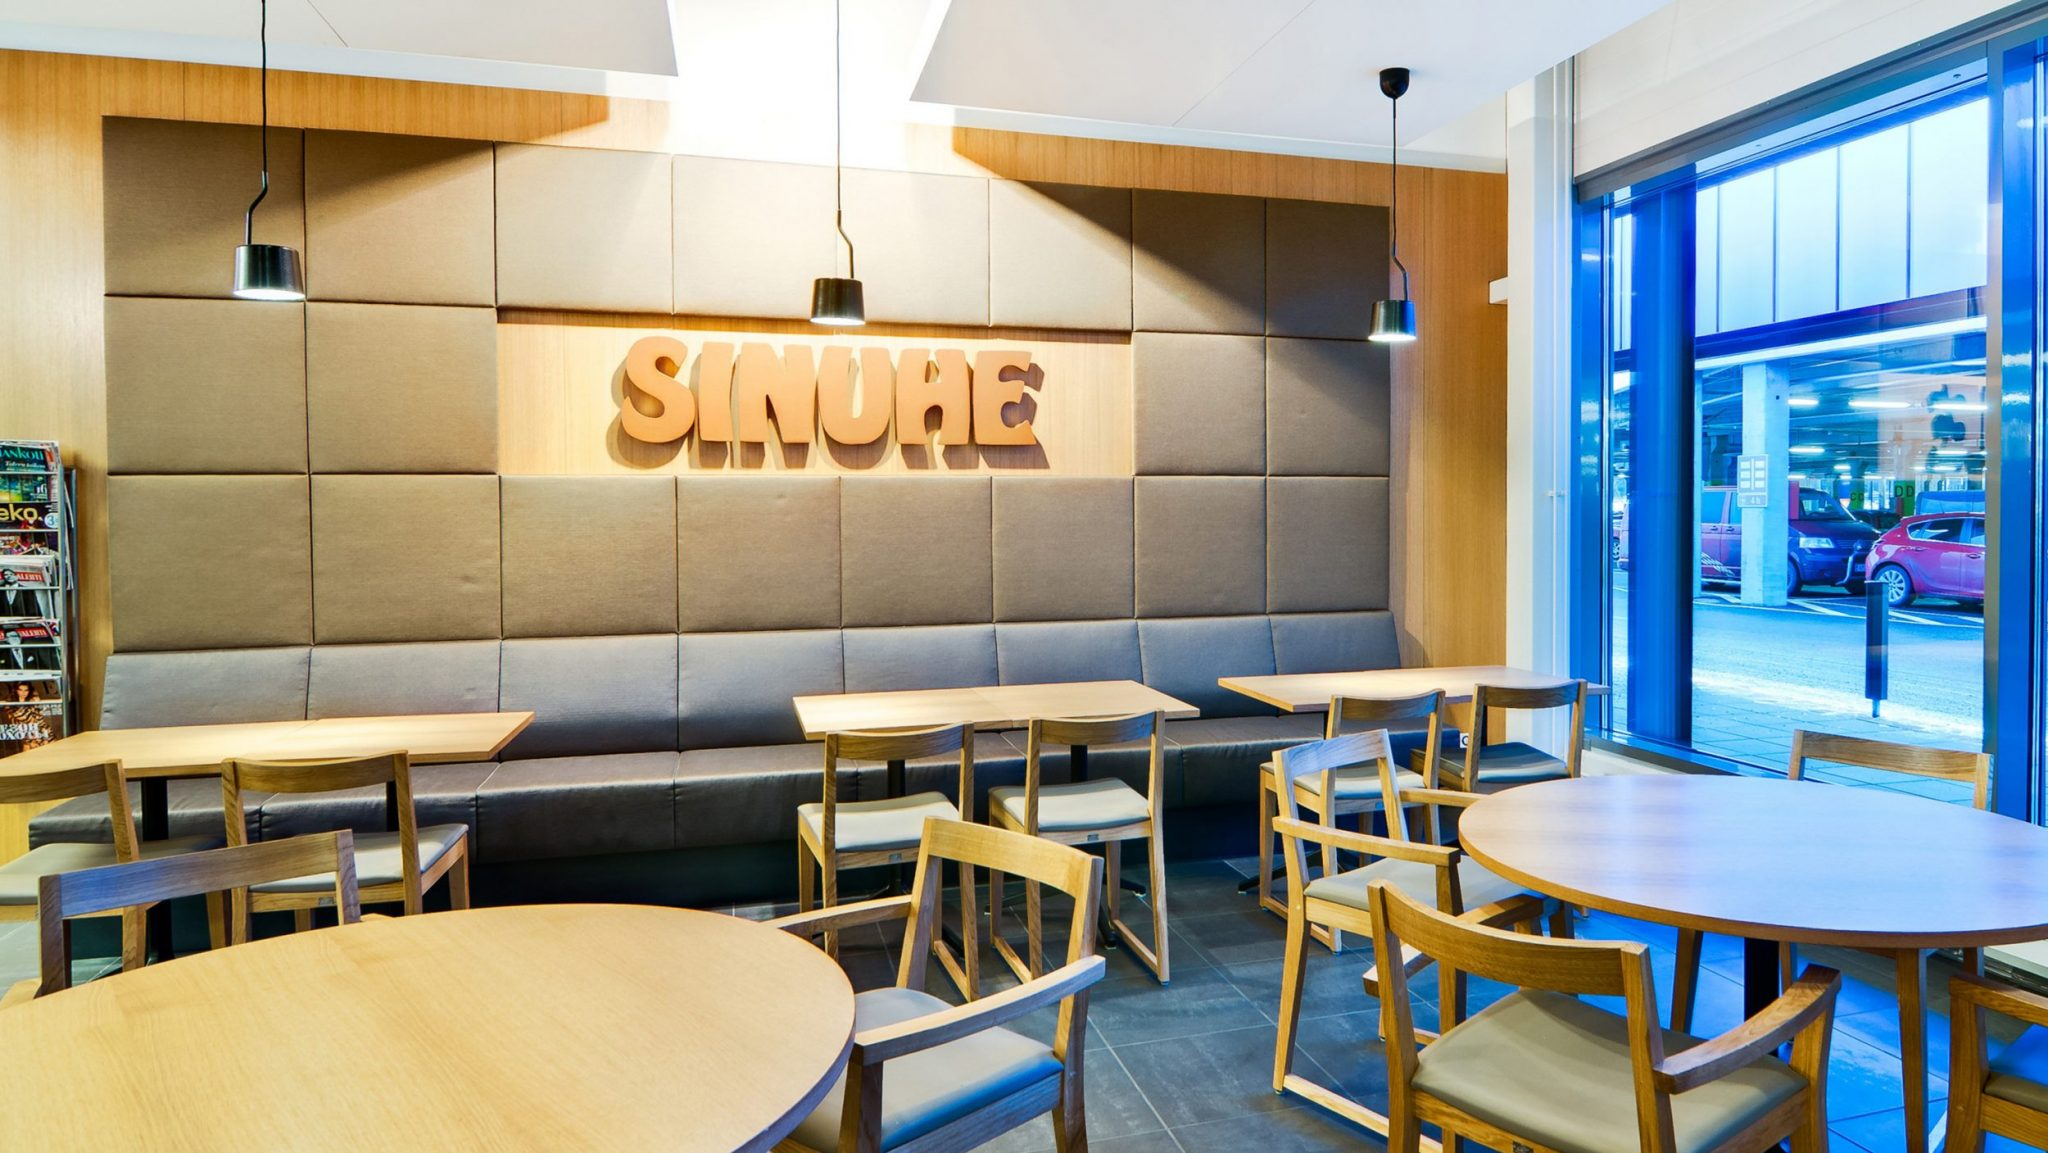 Sinuhe-Cafe-Karisma-shopping-center-Lahti-GI-project-2